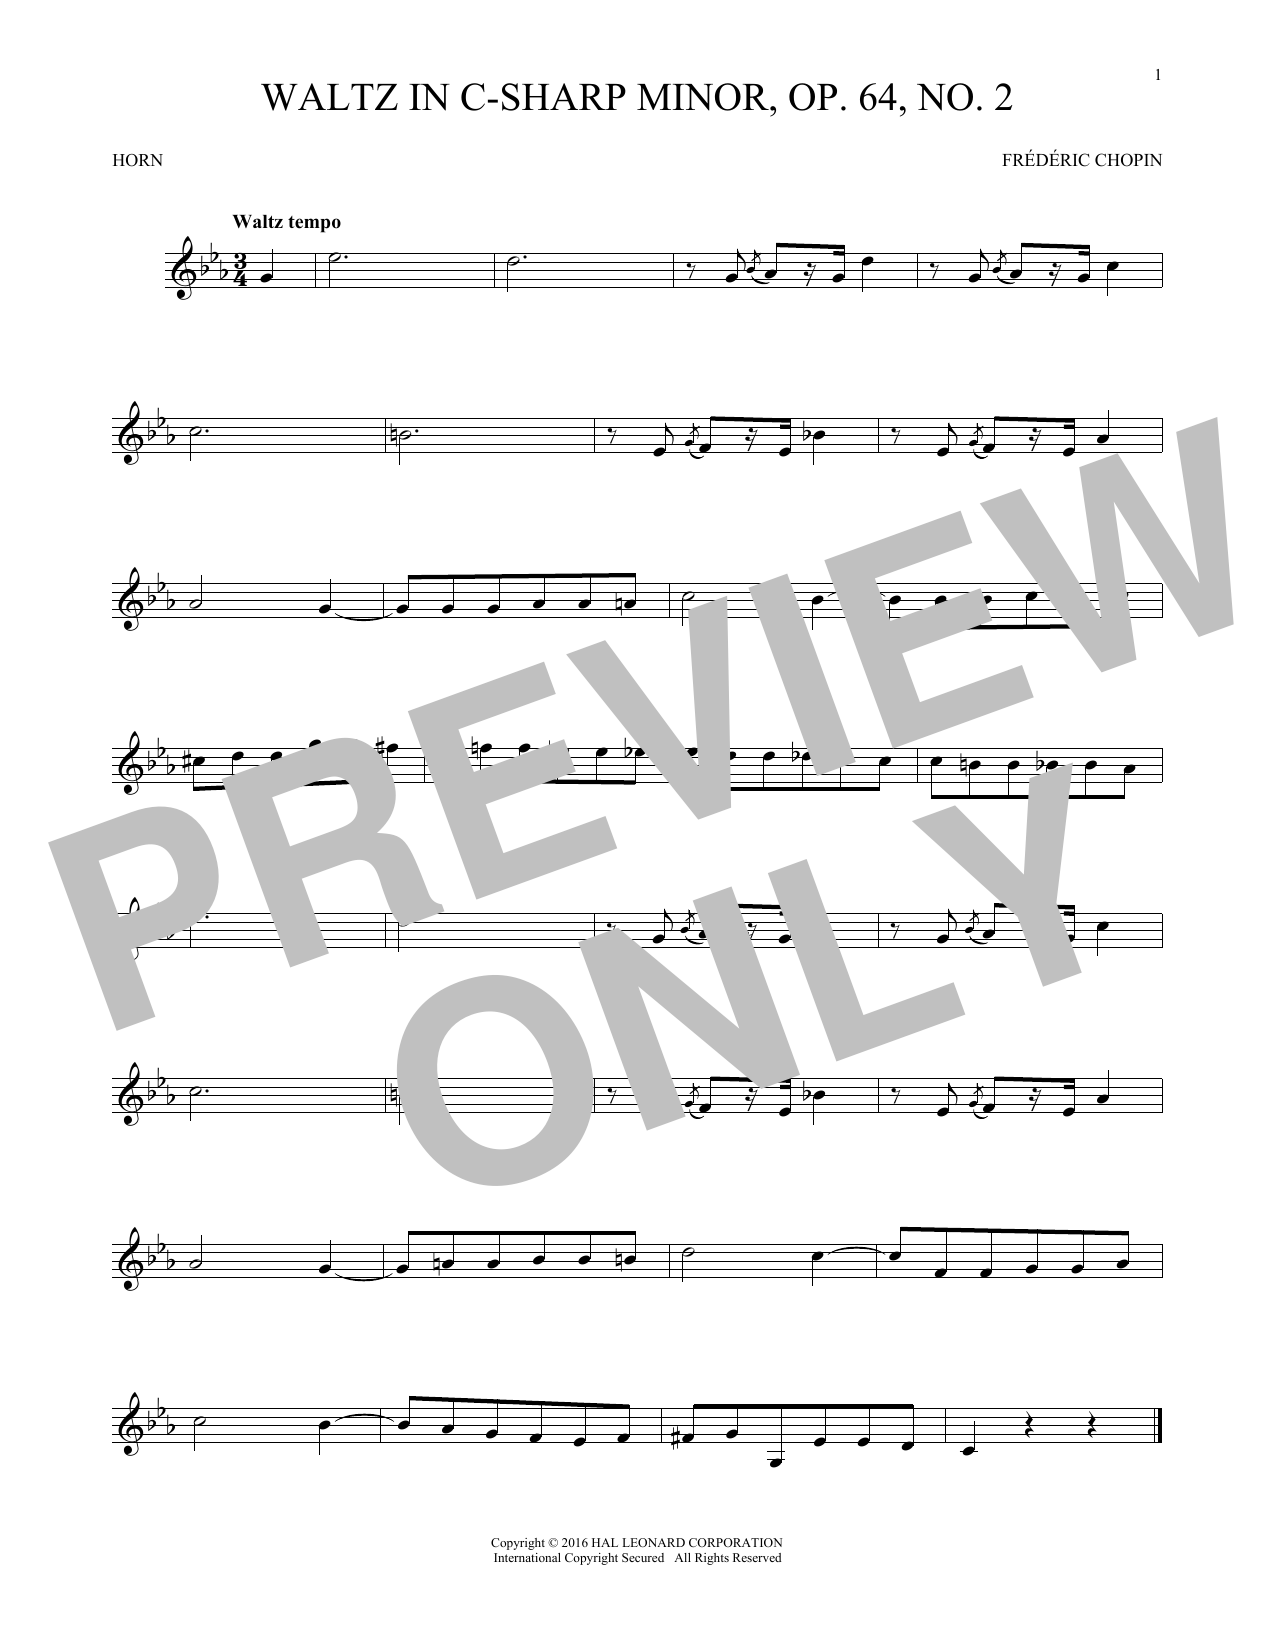 Waltz In C-Sharp Minor, Op. 64, No. 2 (French Horn Solo)